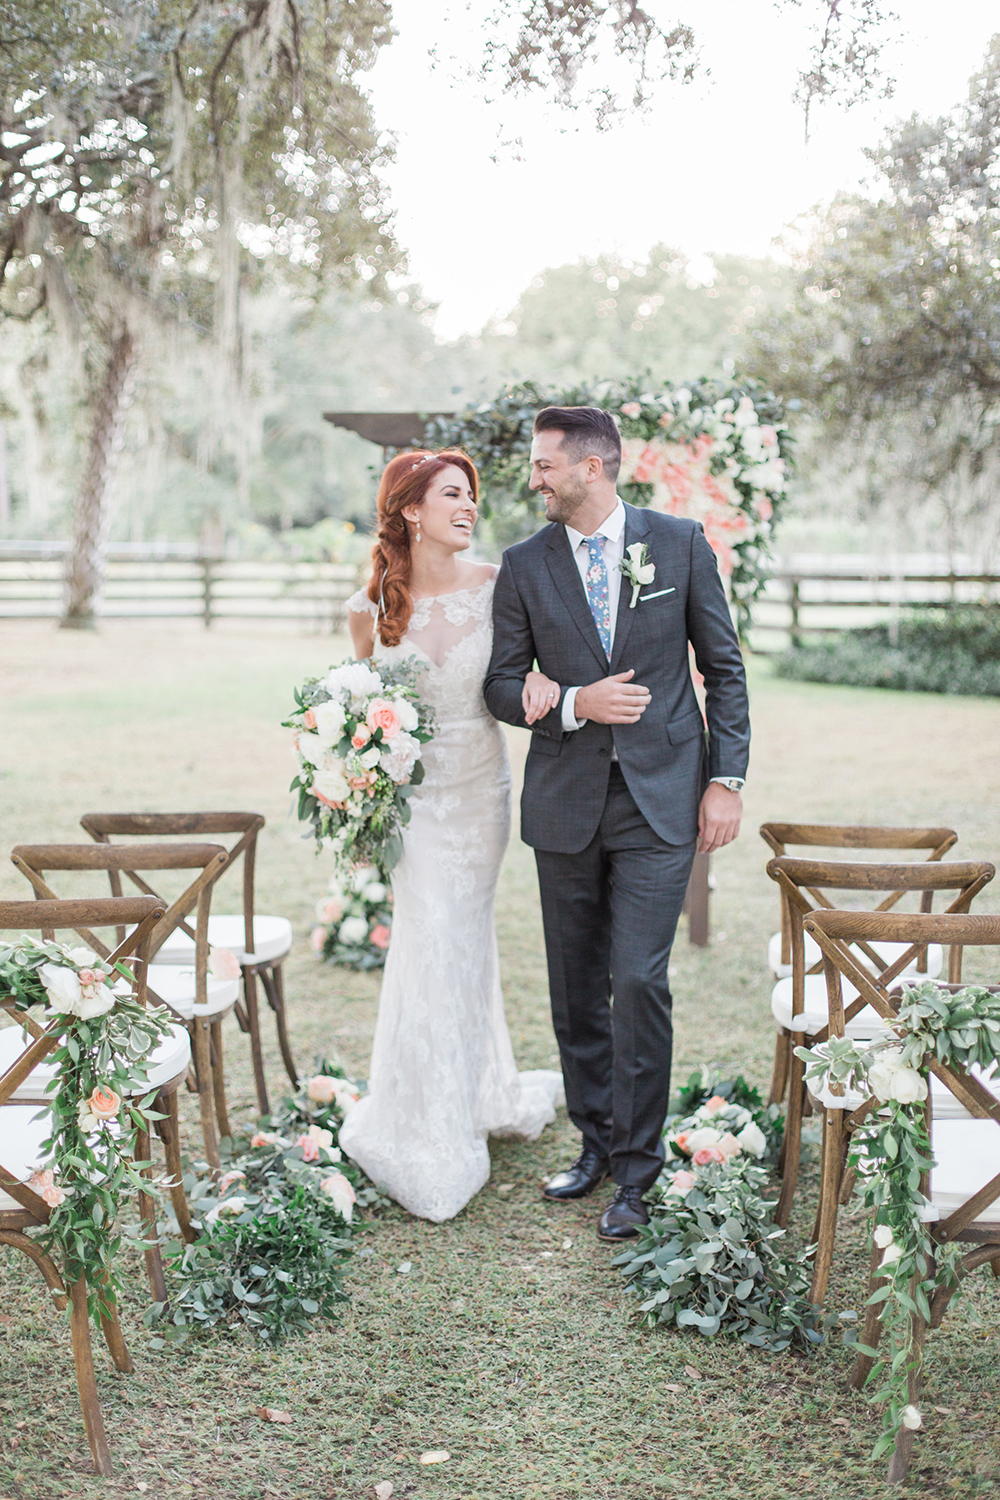 wedding ceremonies - photo by Landon Hendrick Photography http://ruffledblog.com/southern-garden-chic-wedding-inspiration